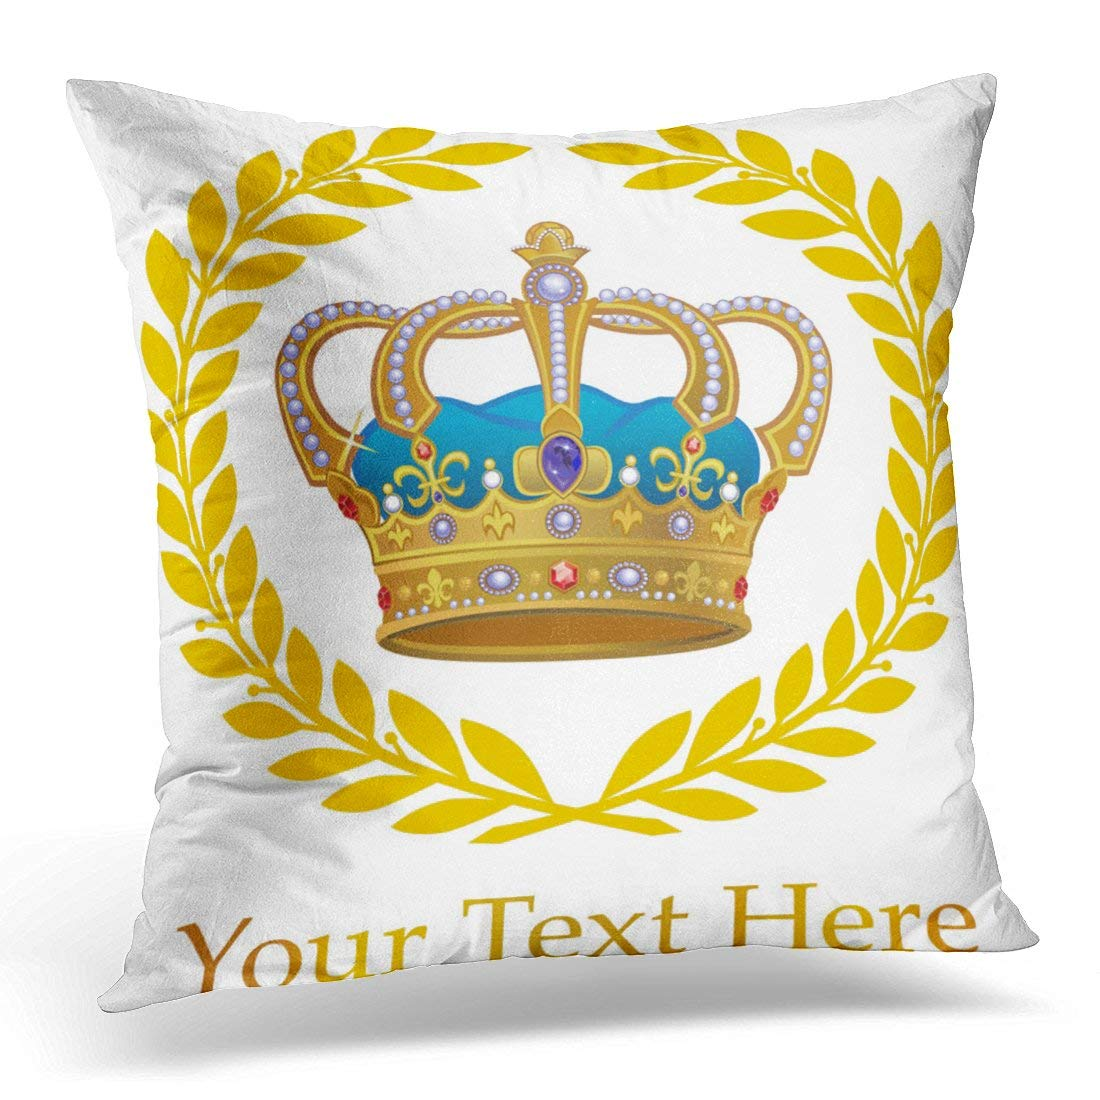 USART Jeweled Royal Gold Crown Antiques Pillow Case Pillow Cover 18x18 inch